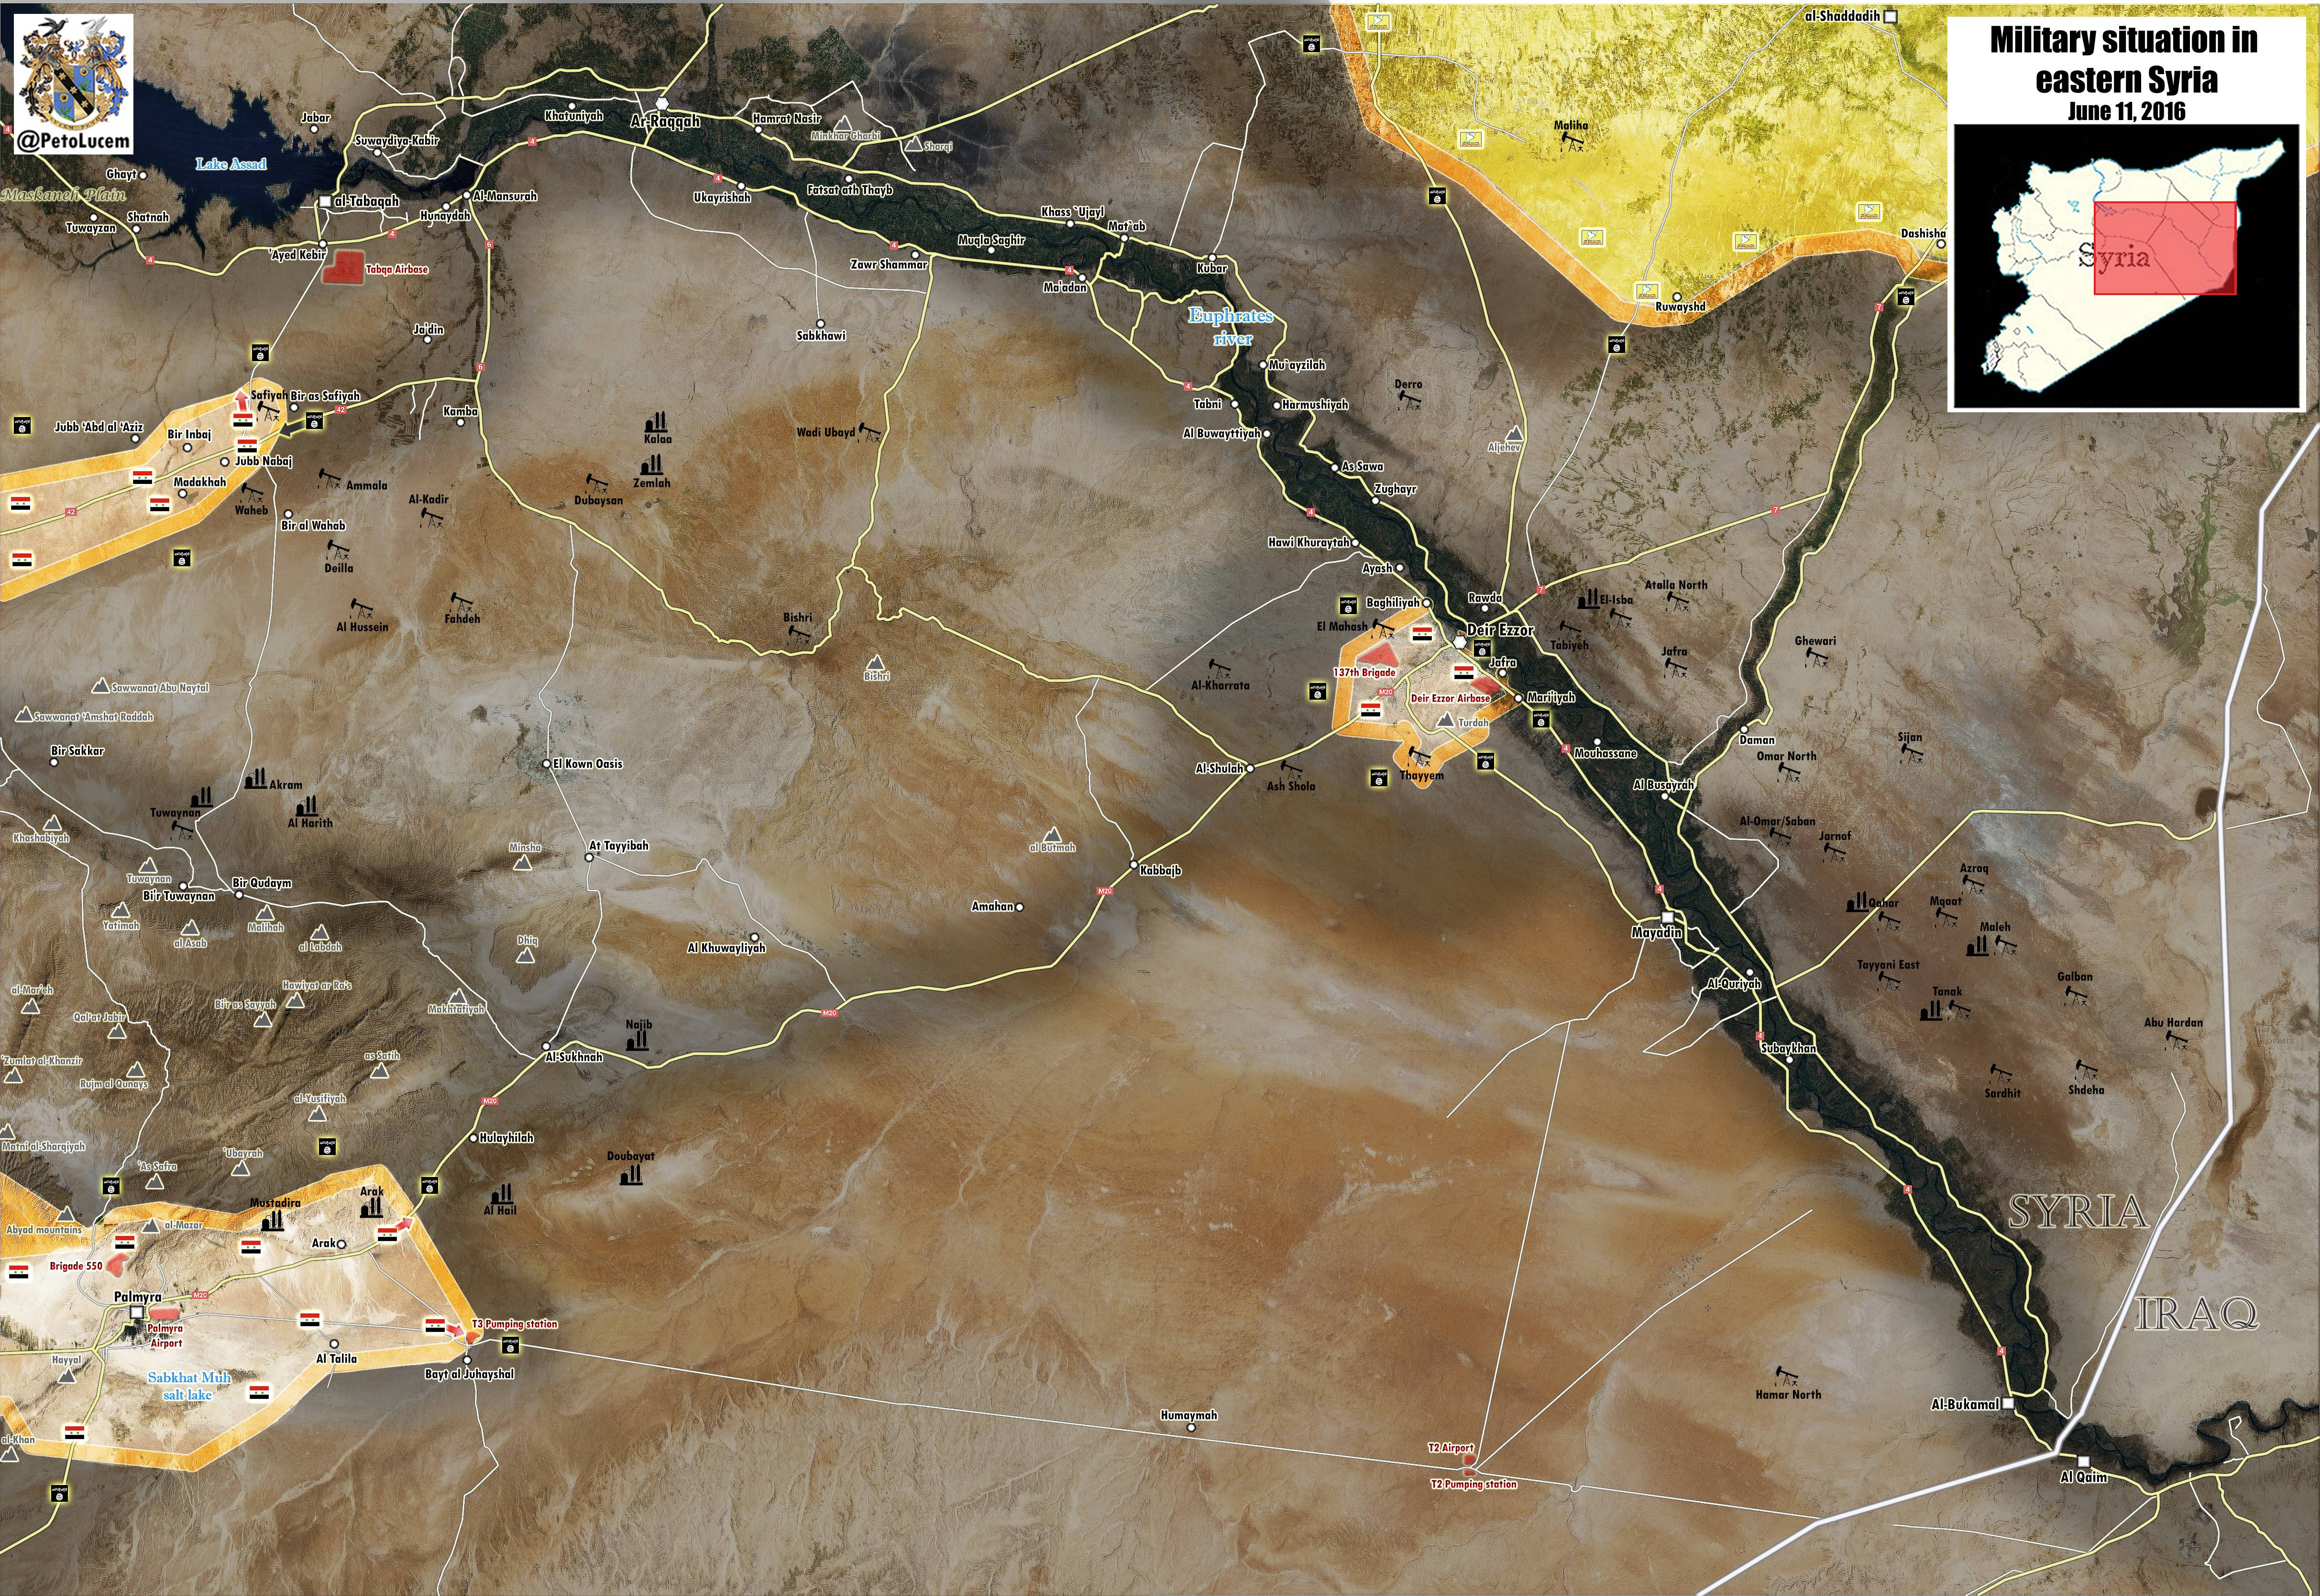 Military Situation in Eastern Syria on June 11